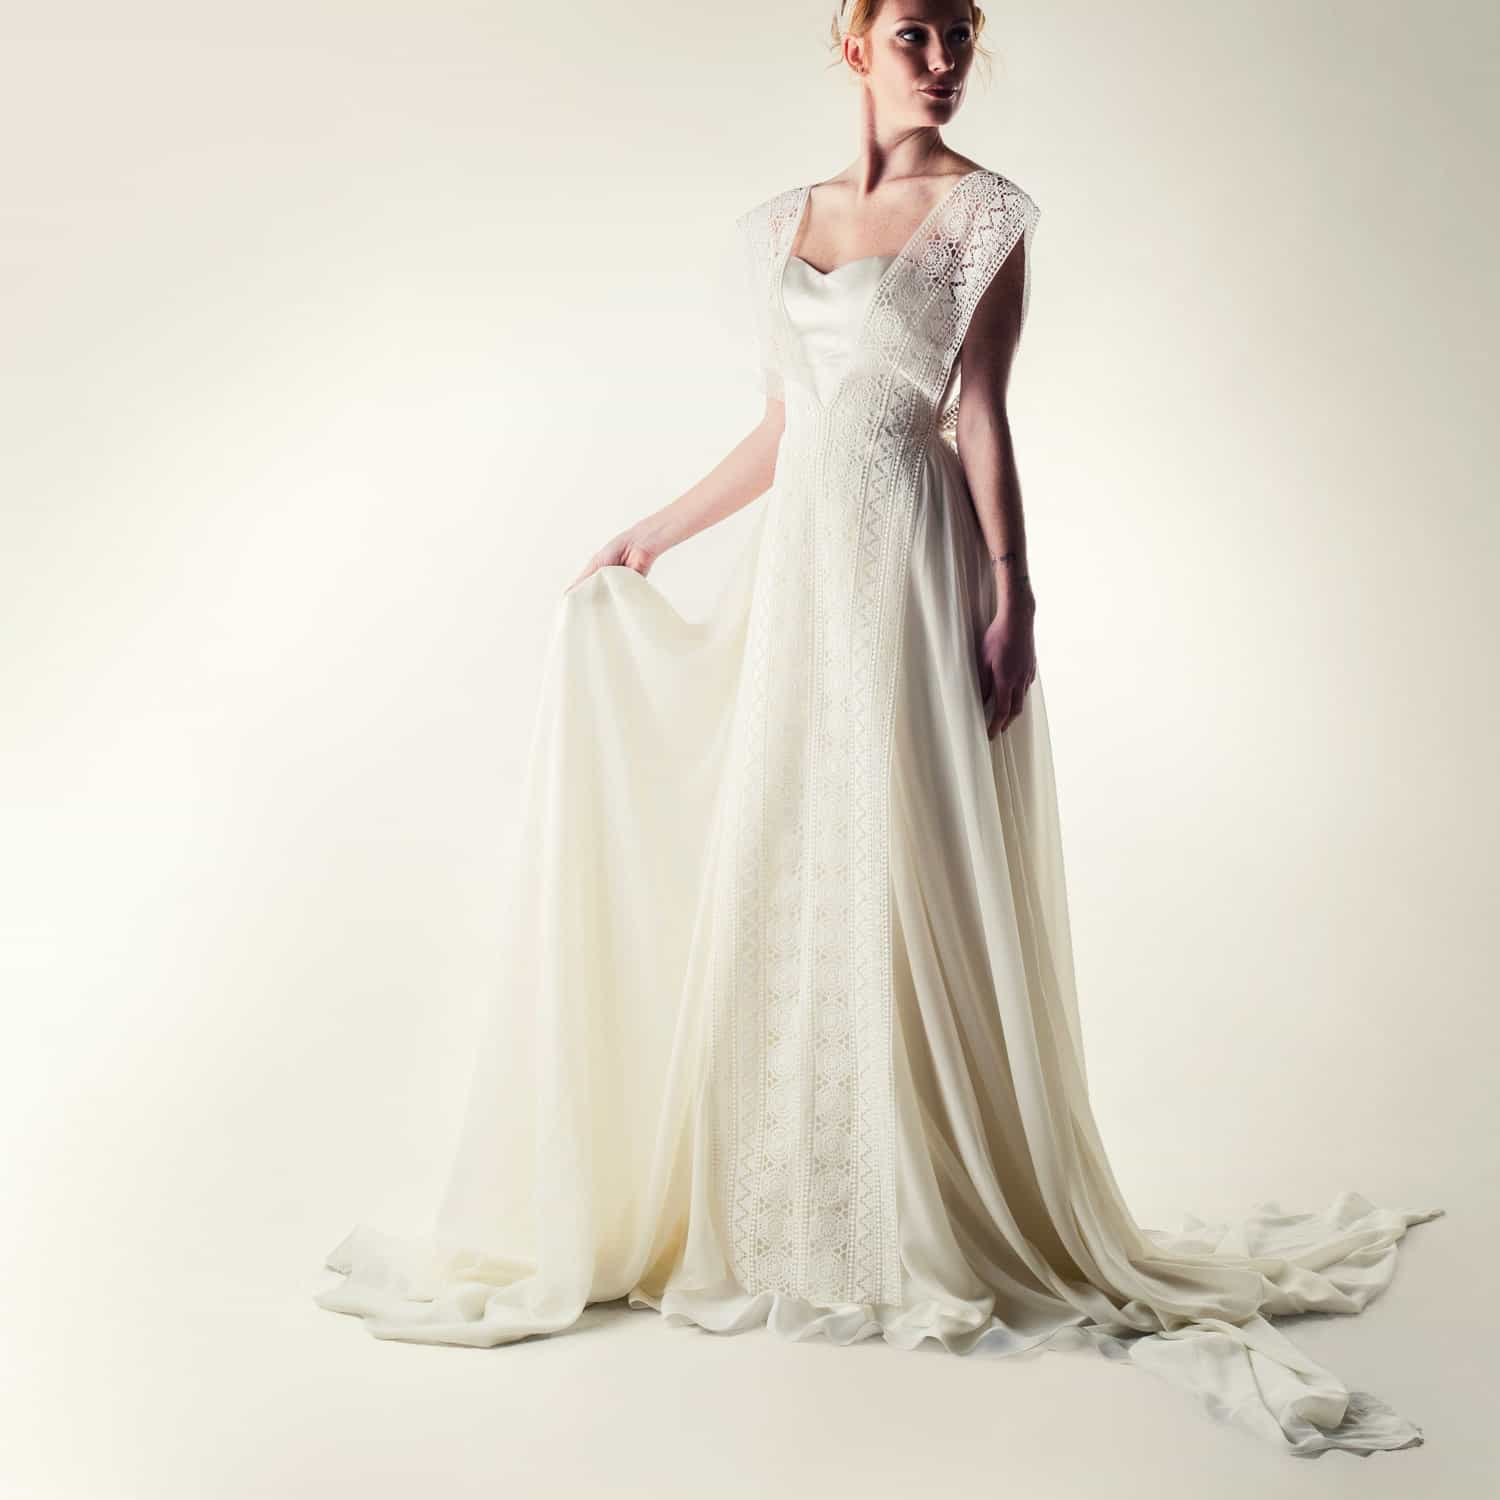 332b6e91176aa Artemisia ~ Lacey fairy wedding dress